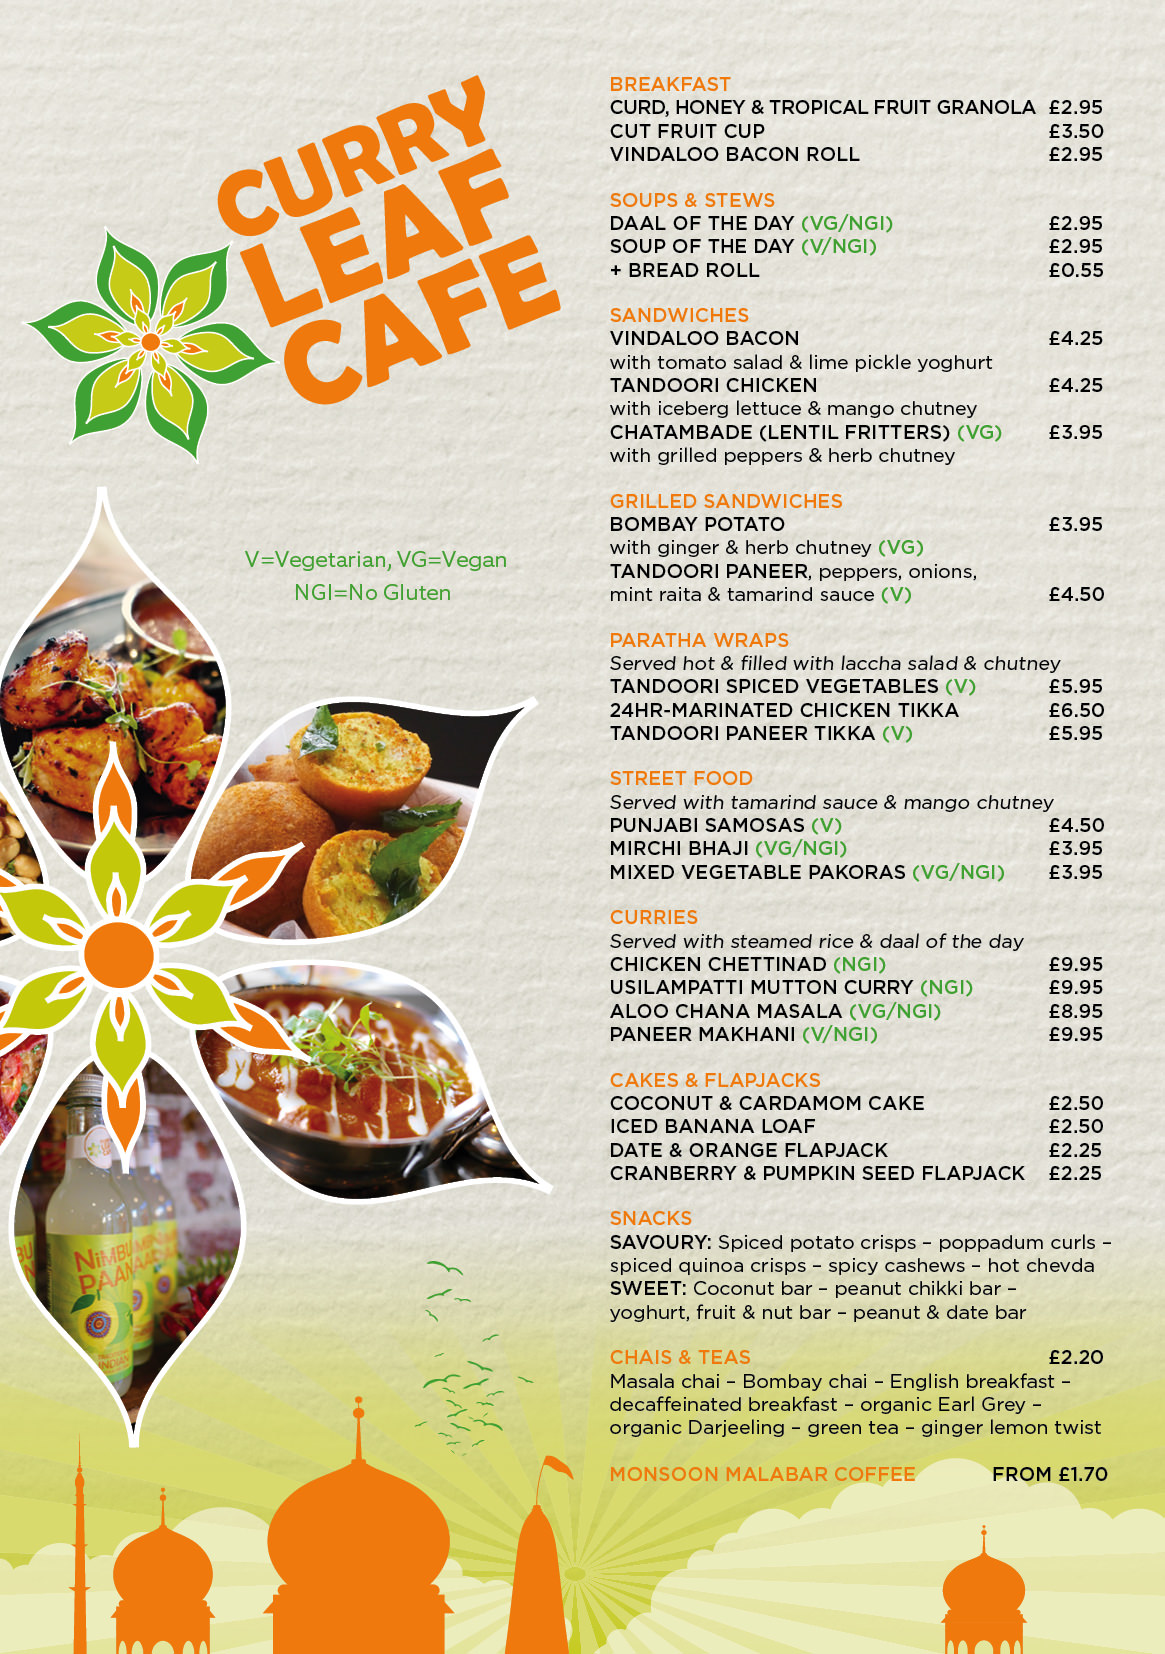 Curry Leaf Cafe Brighton Station Takeaway Indian Street Food